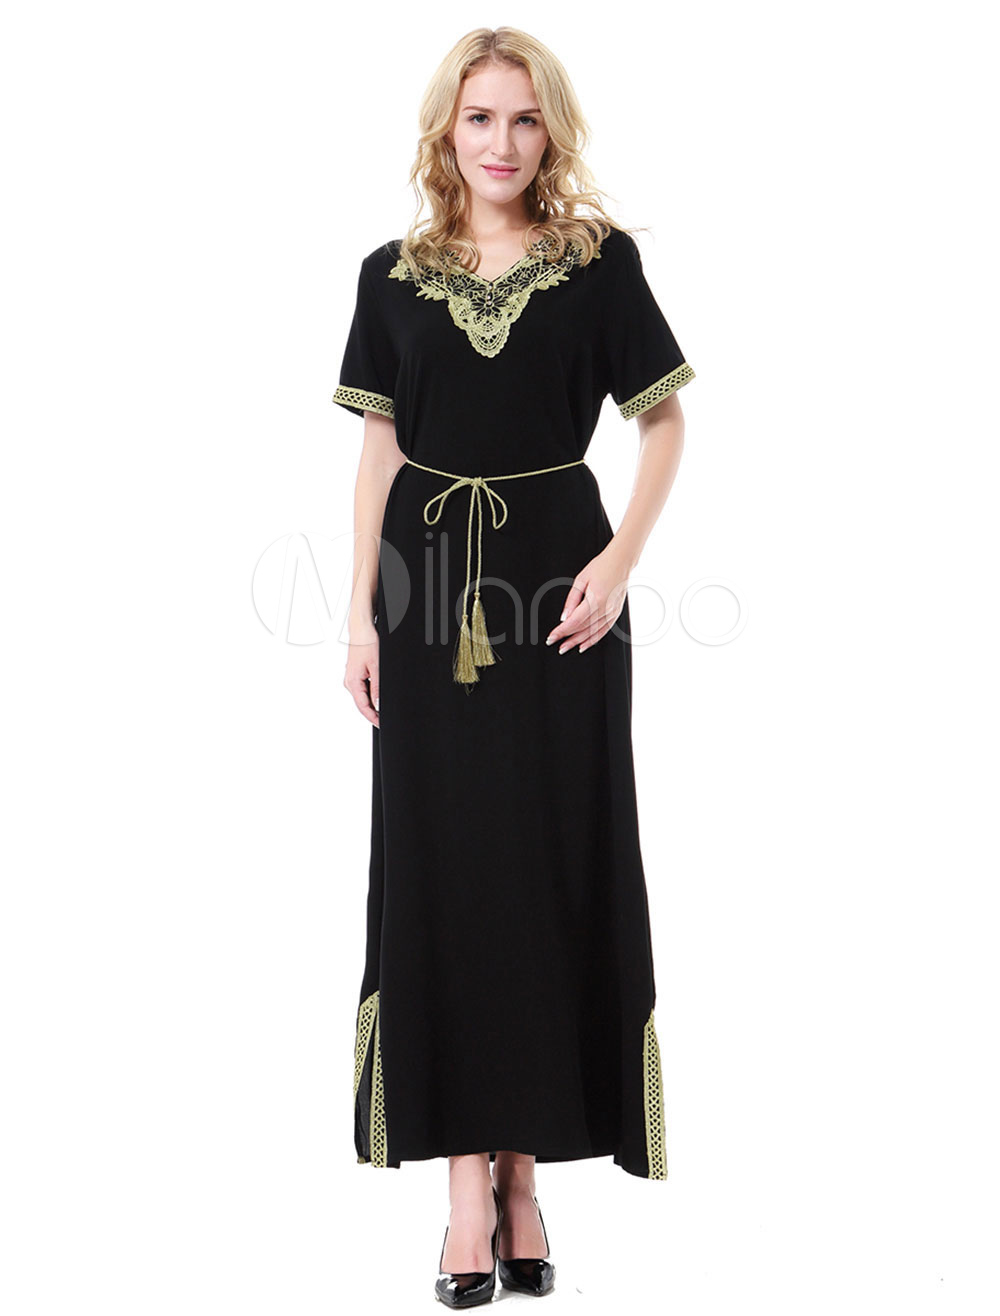 Buy Maxi Muslim Dress V Neck Short Ssleeve Applique Two Tone Abaya Dress for $26.99 in Milanoo store